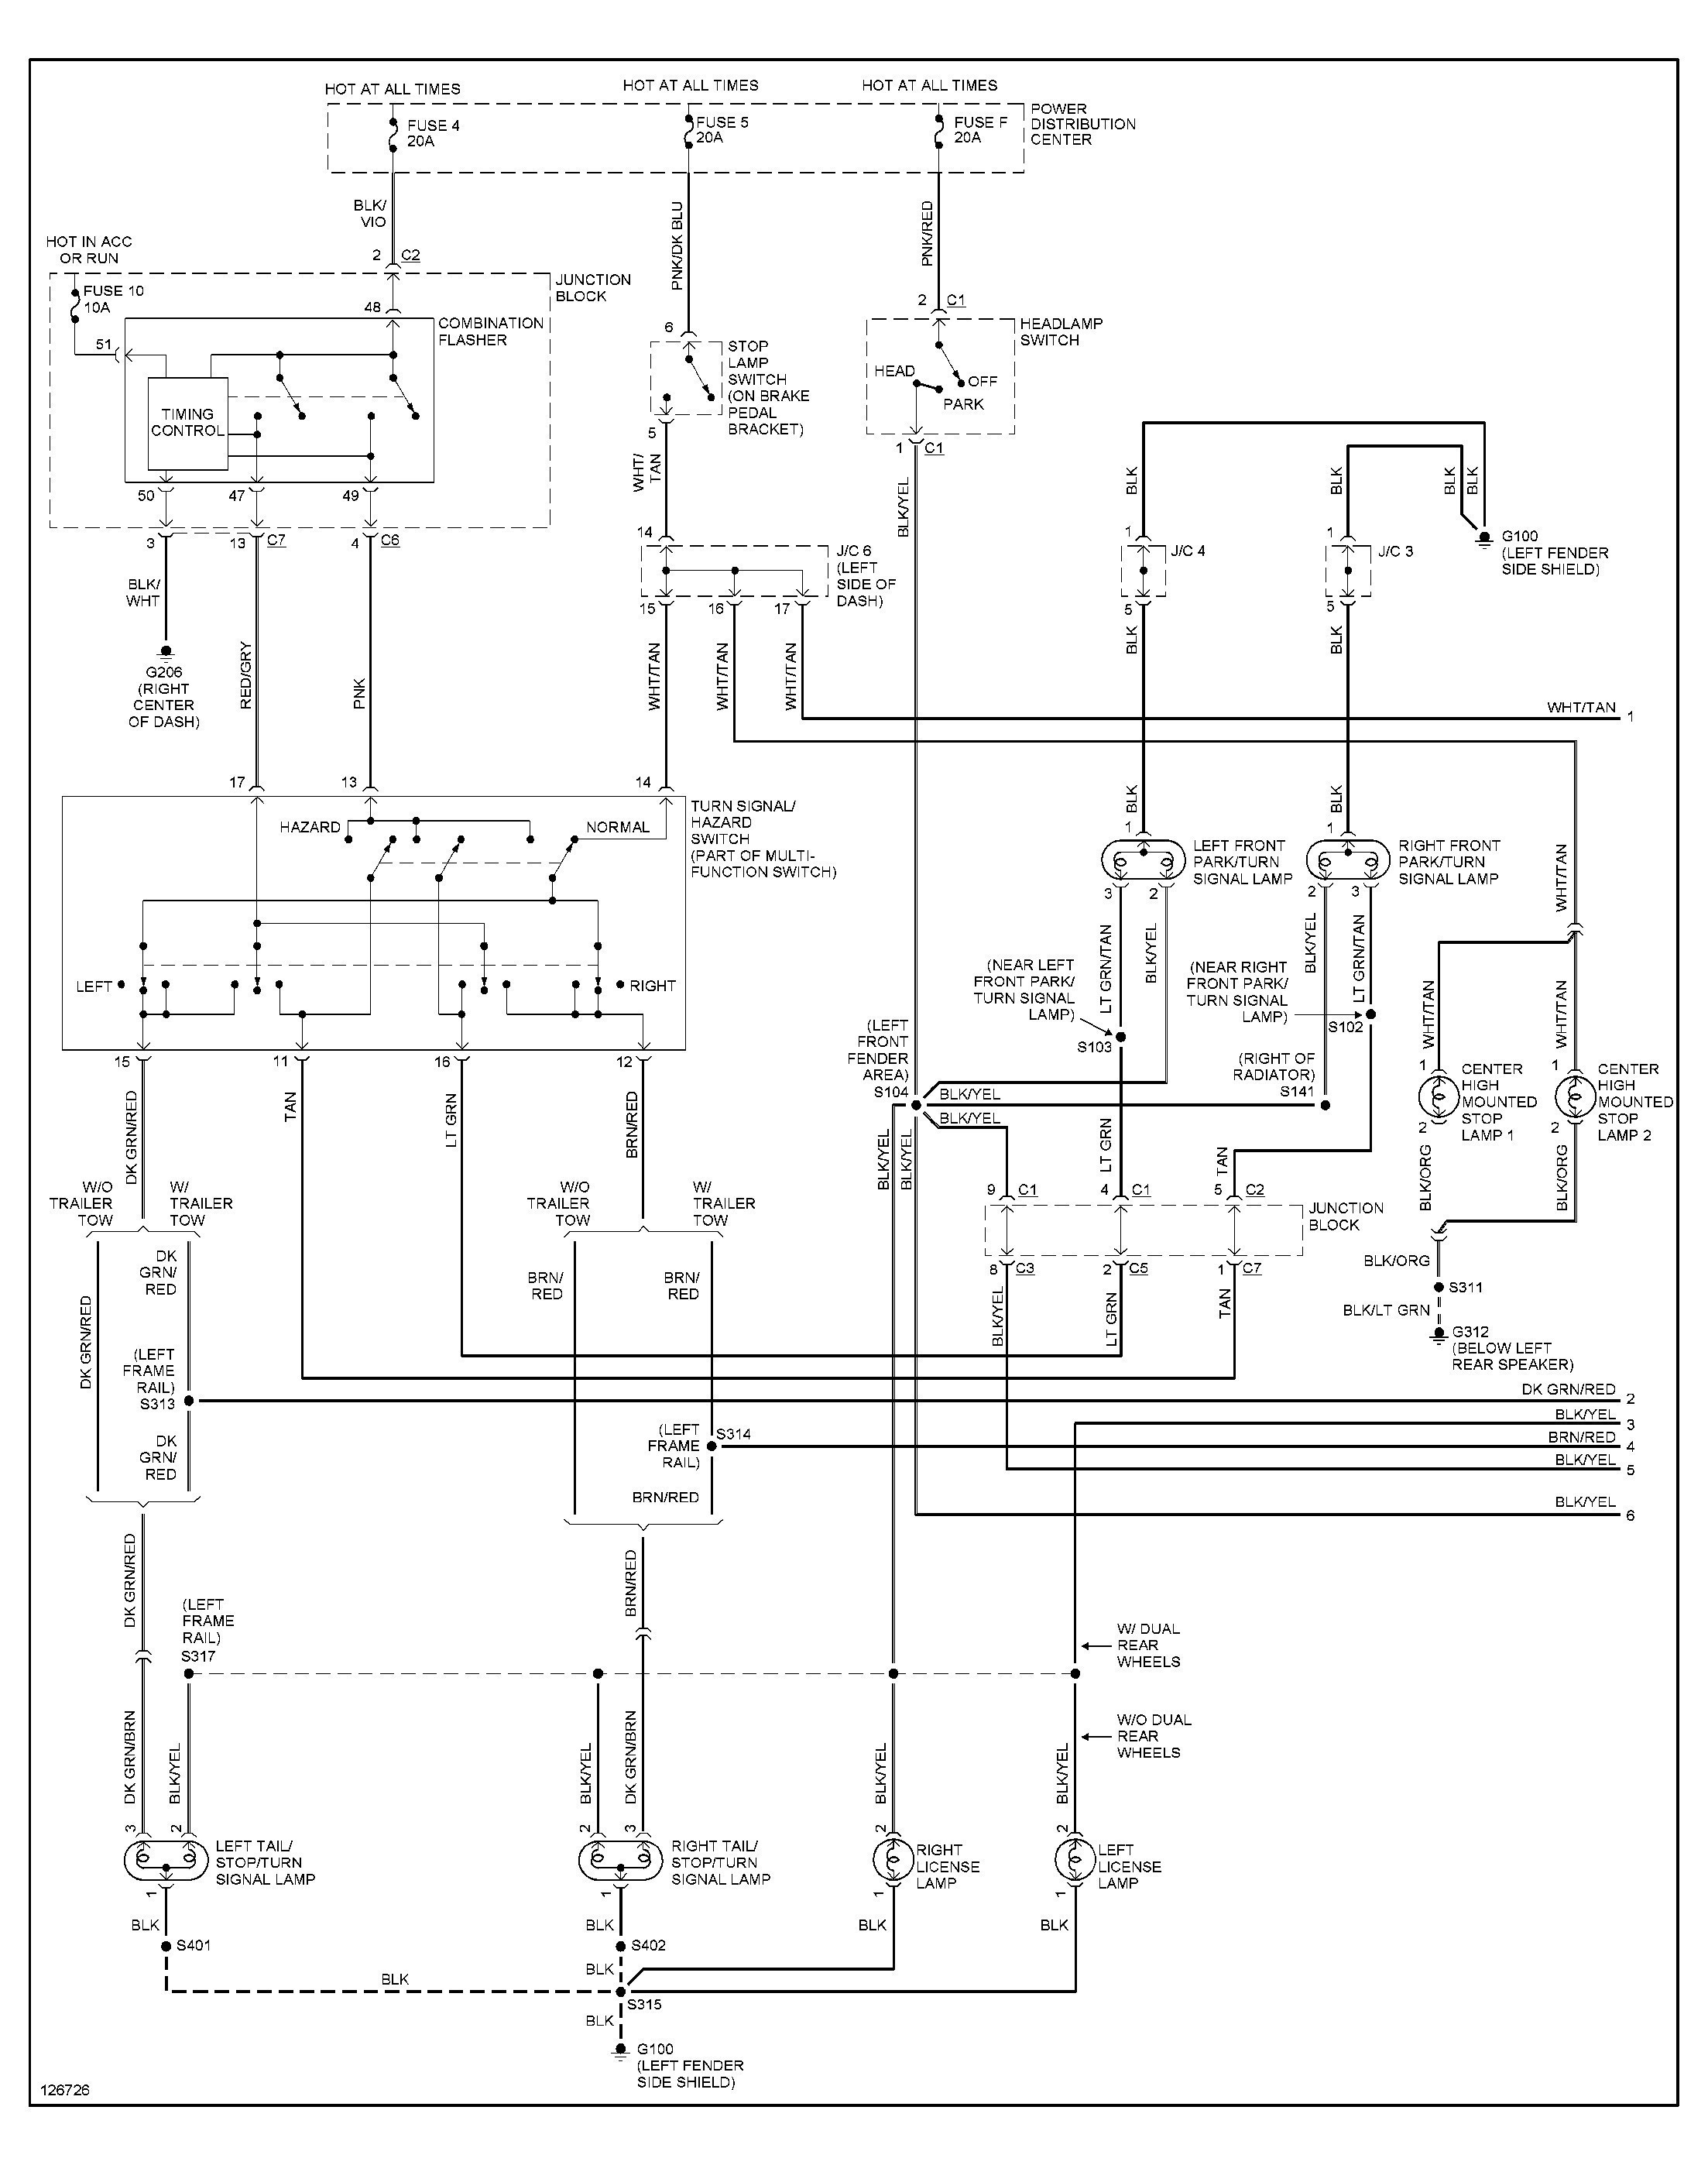 Dodge Ram 1500 Wiring Diagram Free 2018 2001 Dodge Ram Wiring - 2001 Dodge Ram 1500 Trailer Wiring Diagram